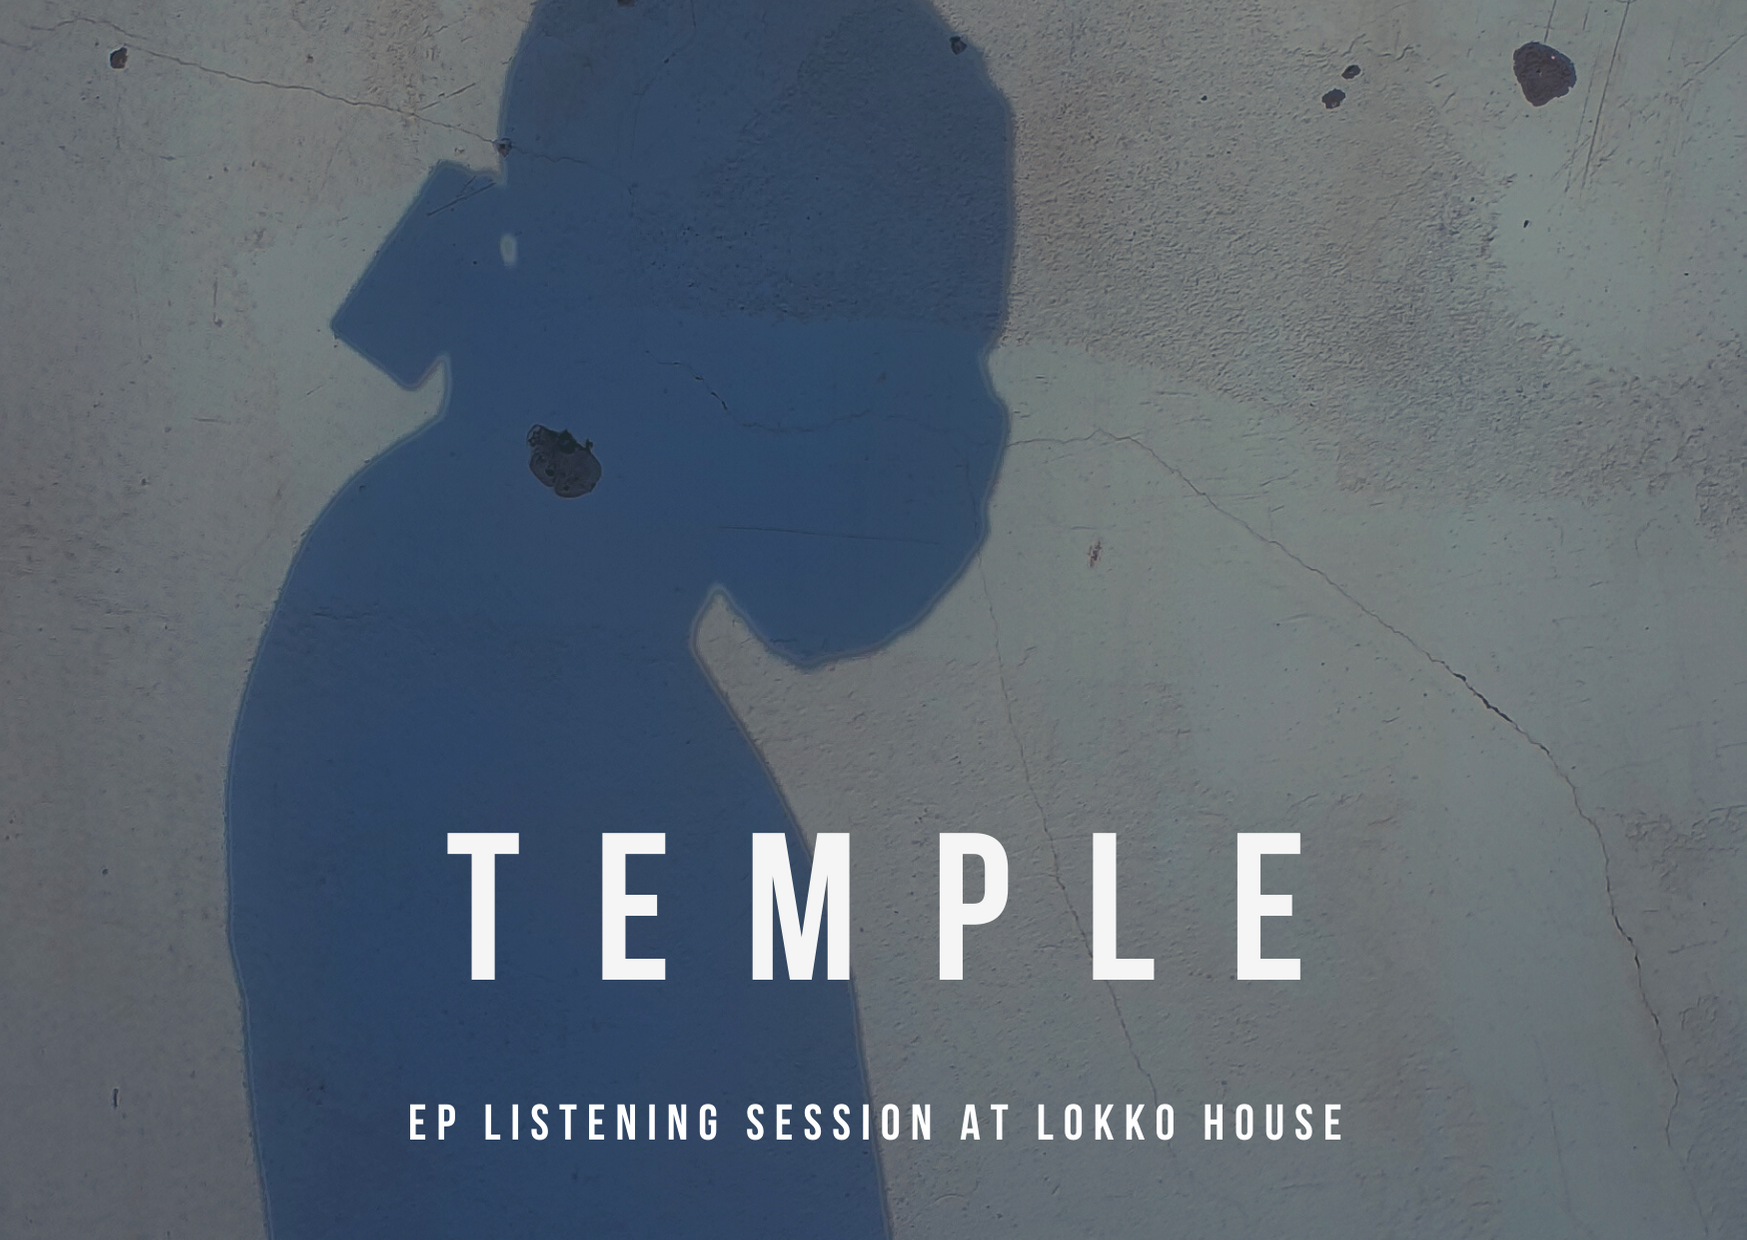 Temple EP Listening at Lokko House